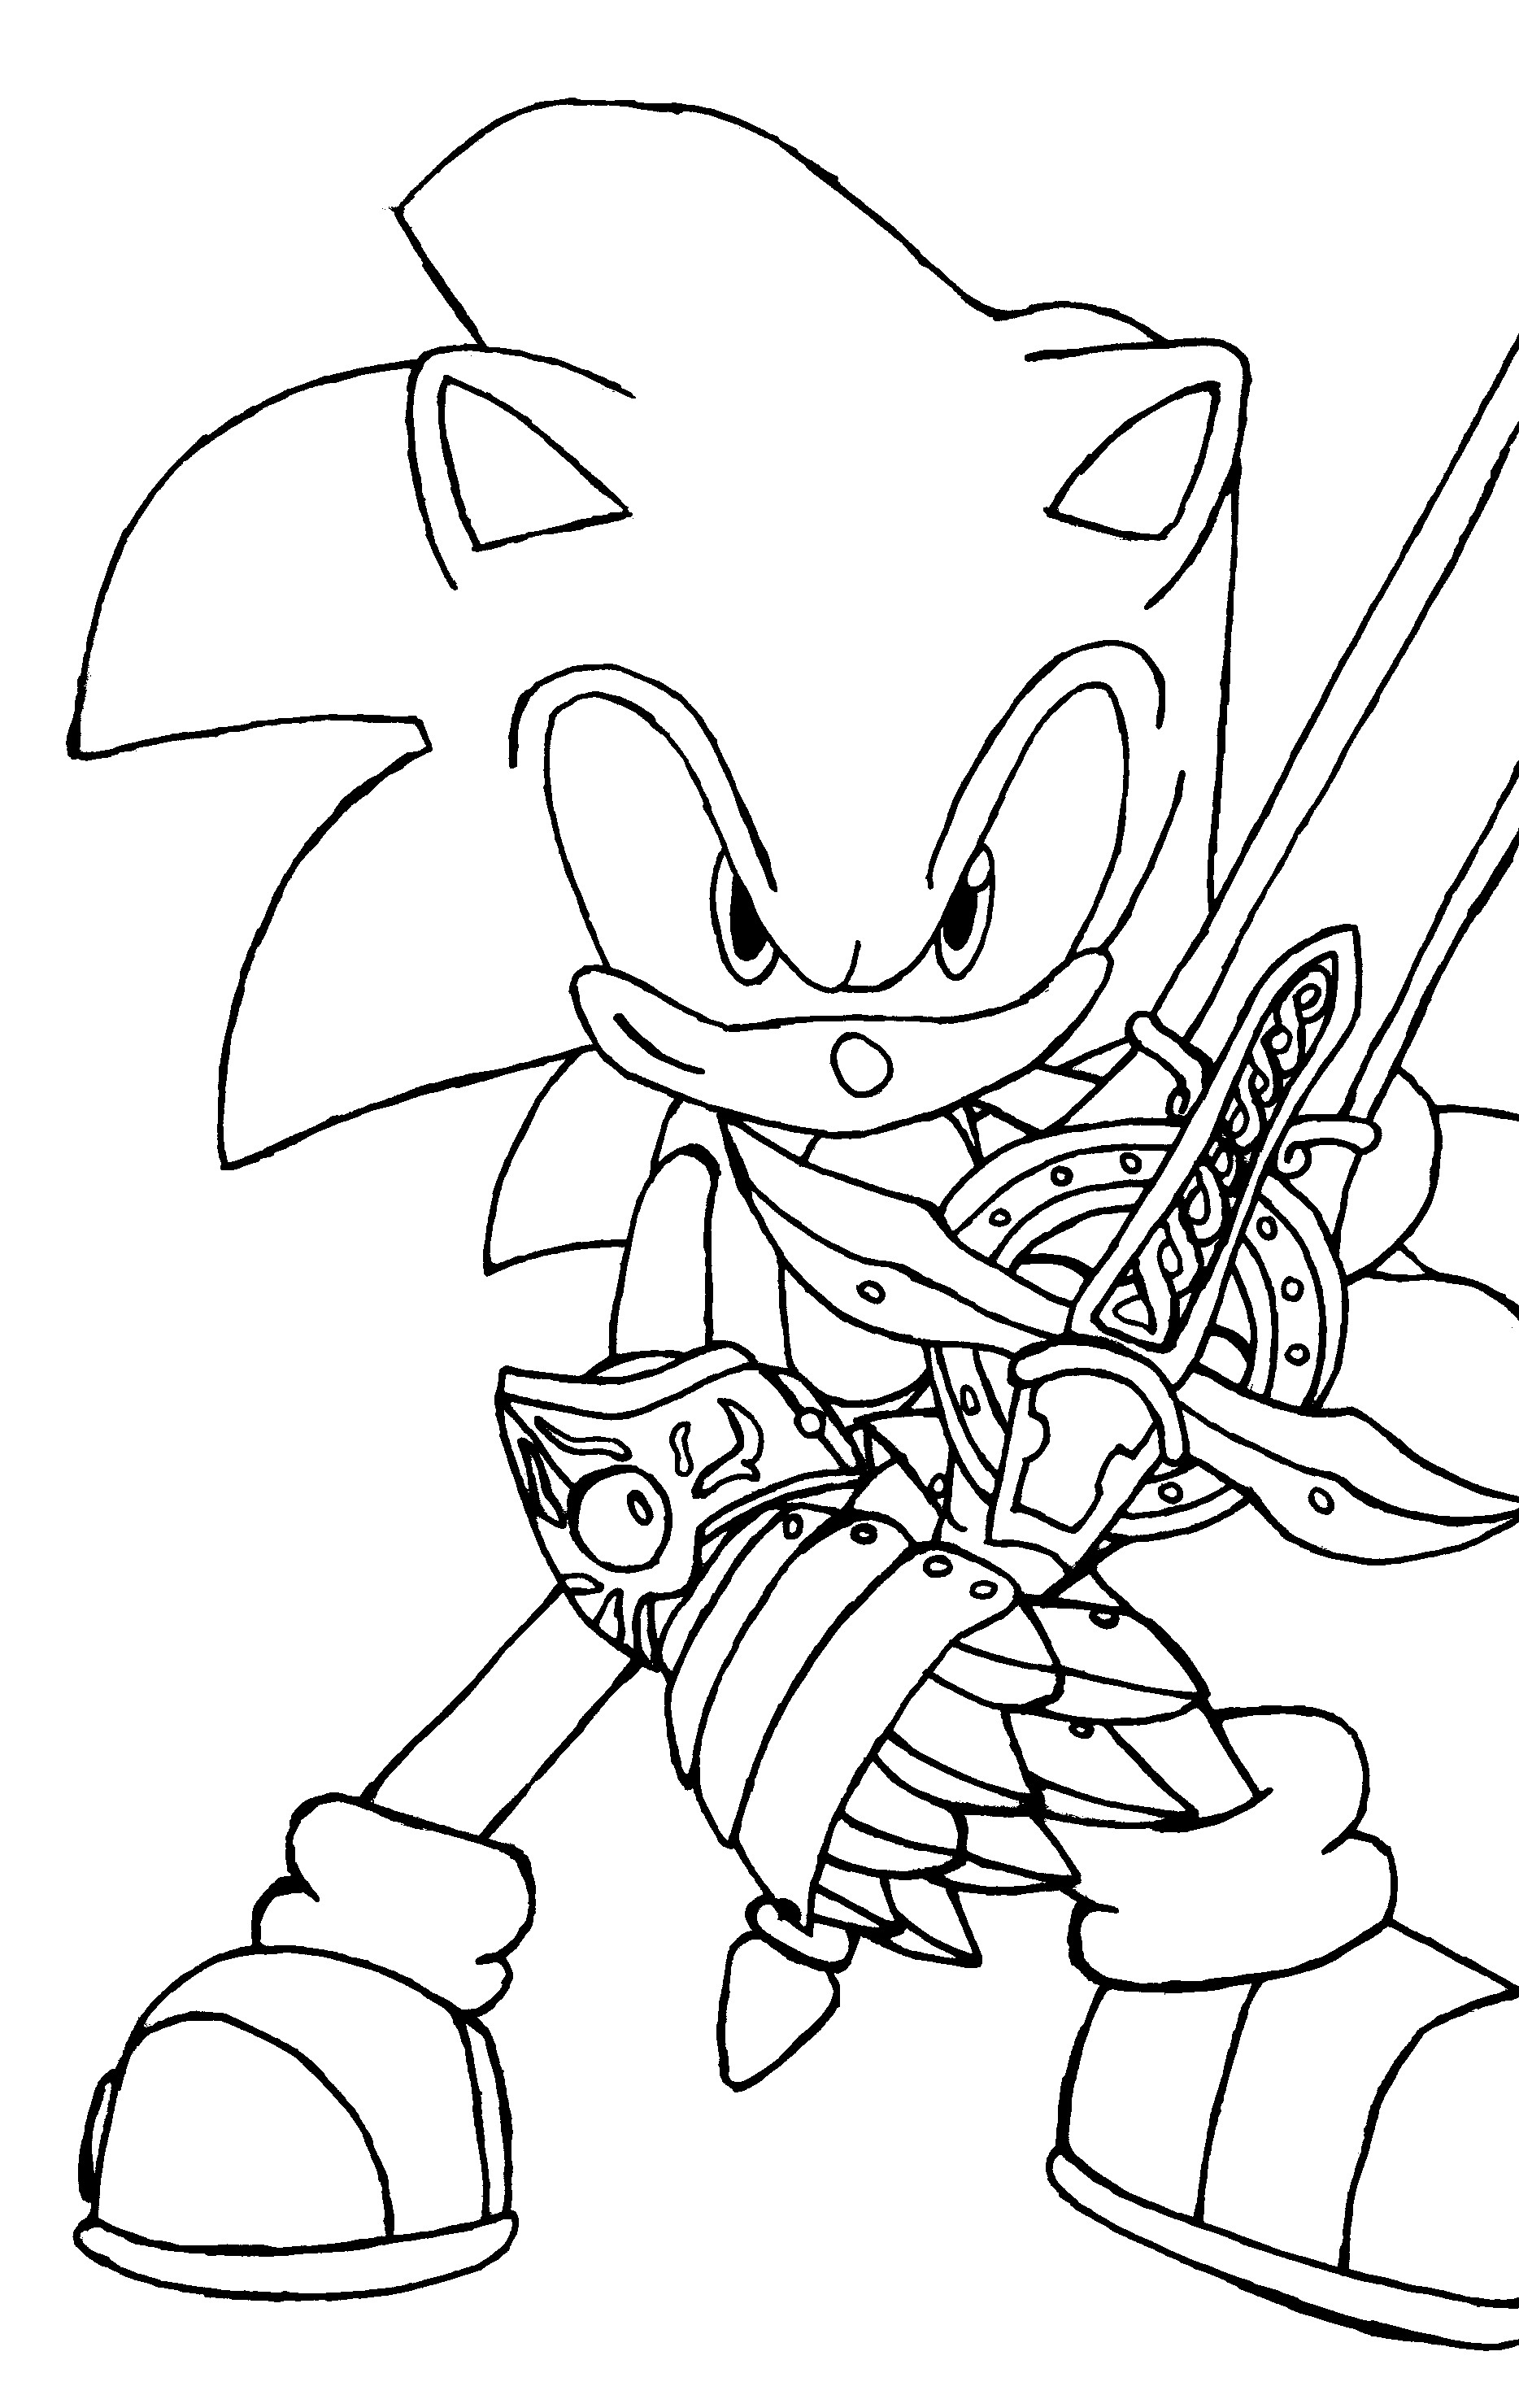 coloring pages sonic the hedgehog - photo#10